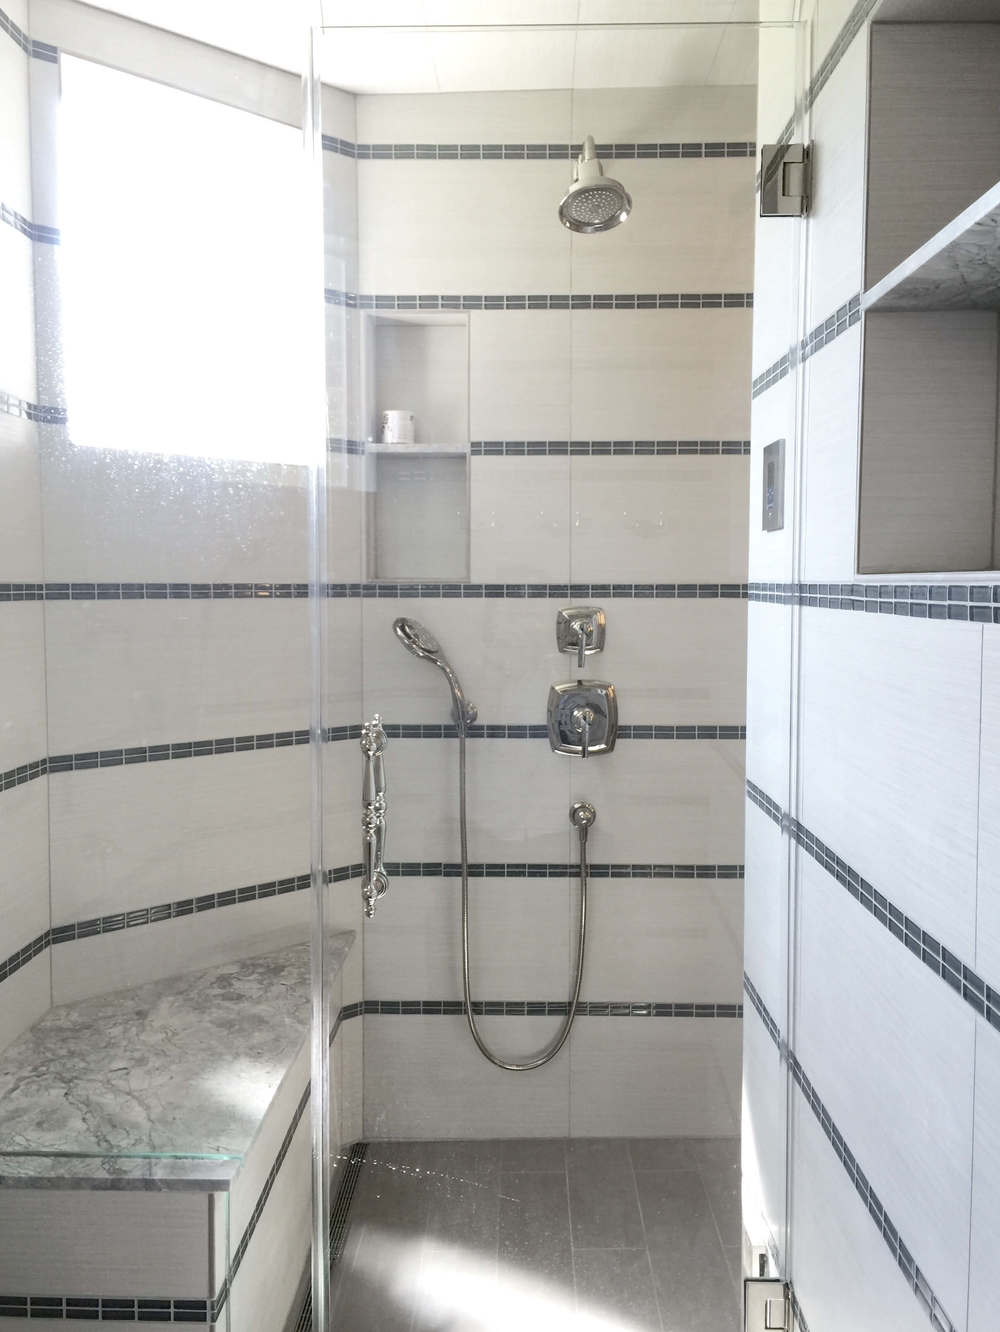 Steam Shower - (End of construction pic, hence the glass being a bit spotted!)